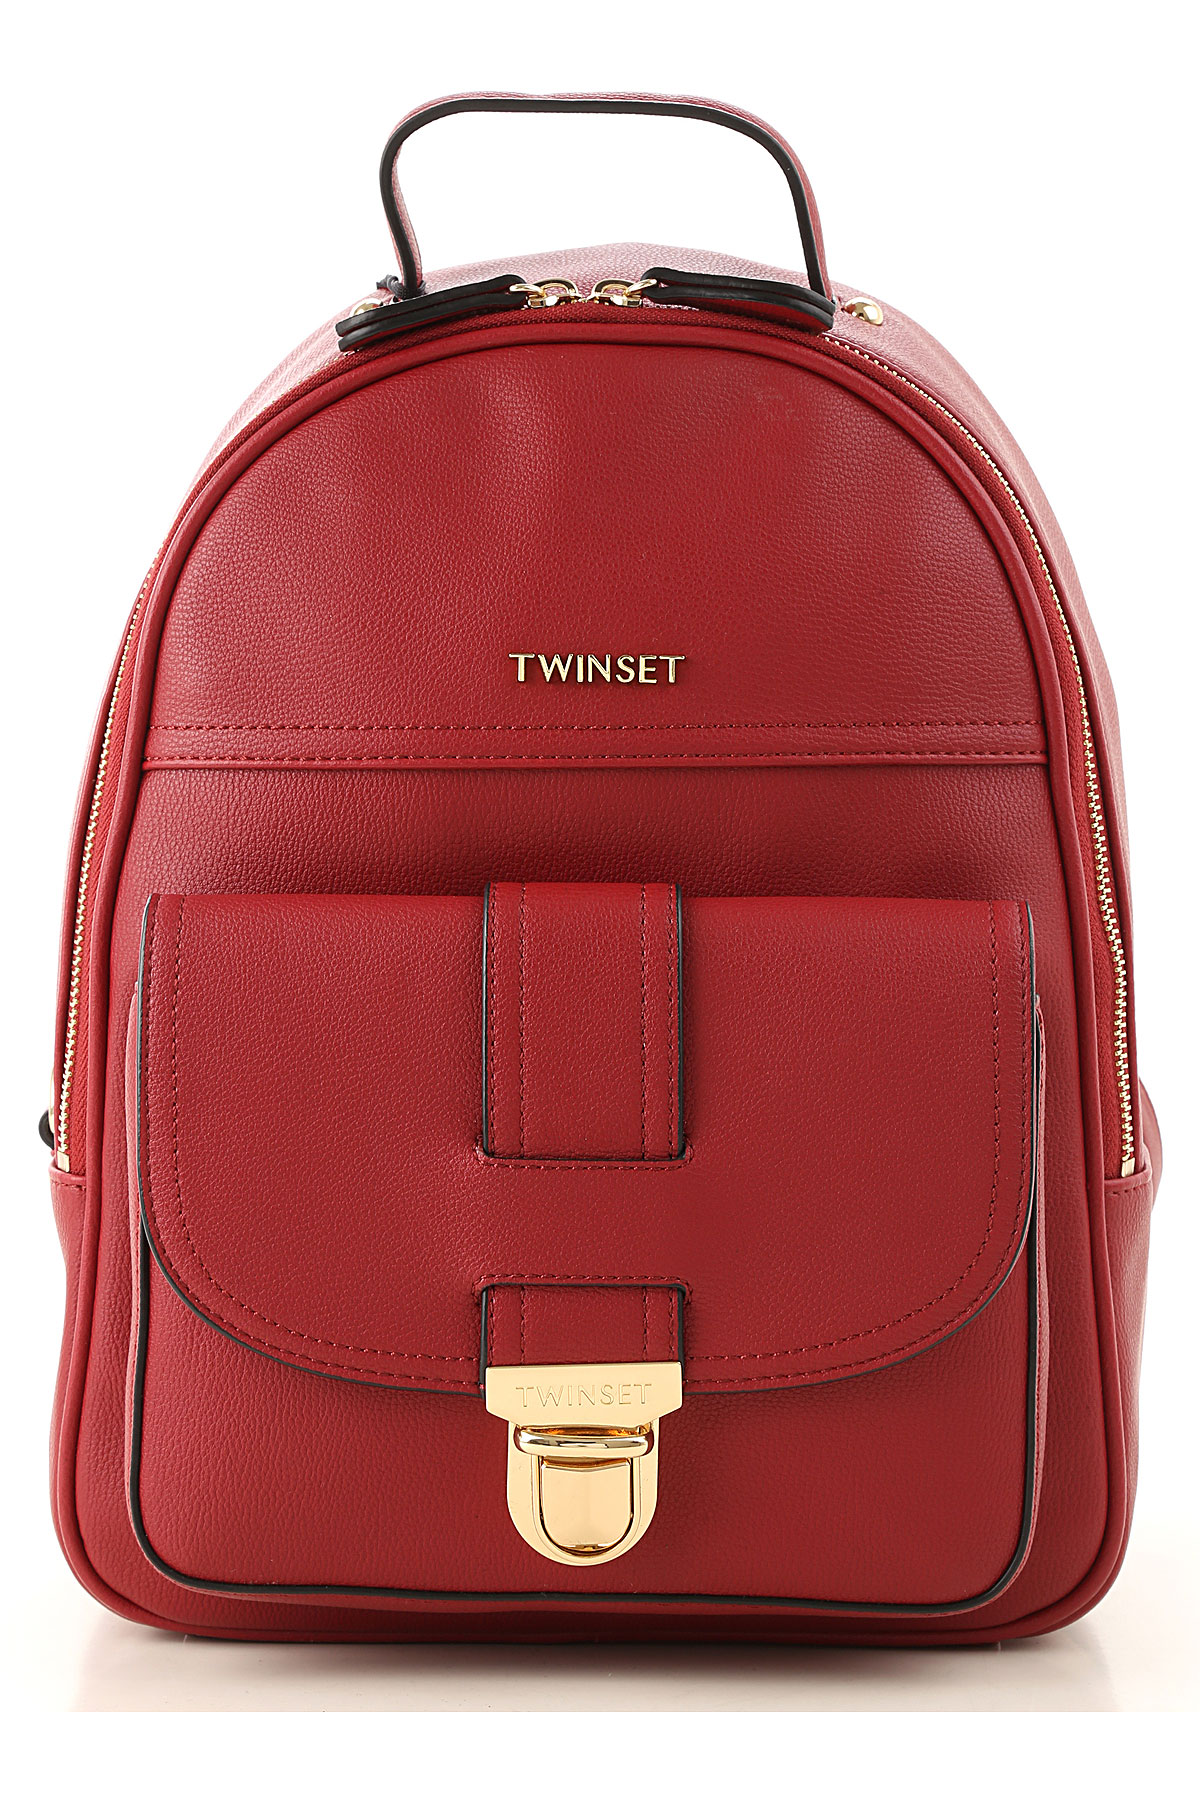 Twin Set by Simona Barbieri Backpack for Women On Sale, Indian Red, polyurethane, 2019